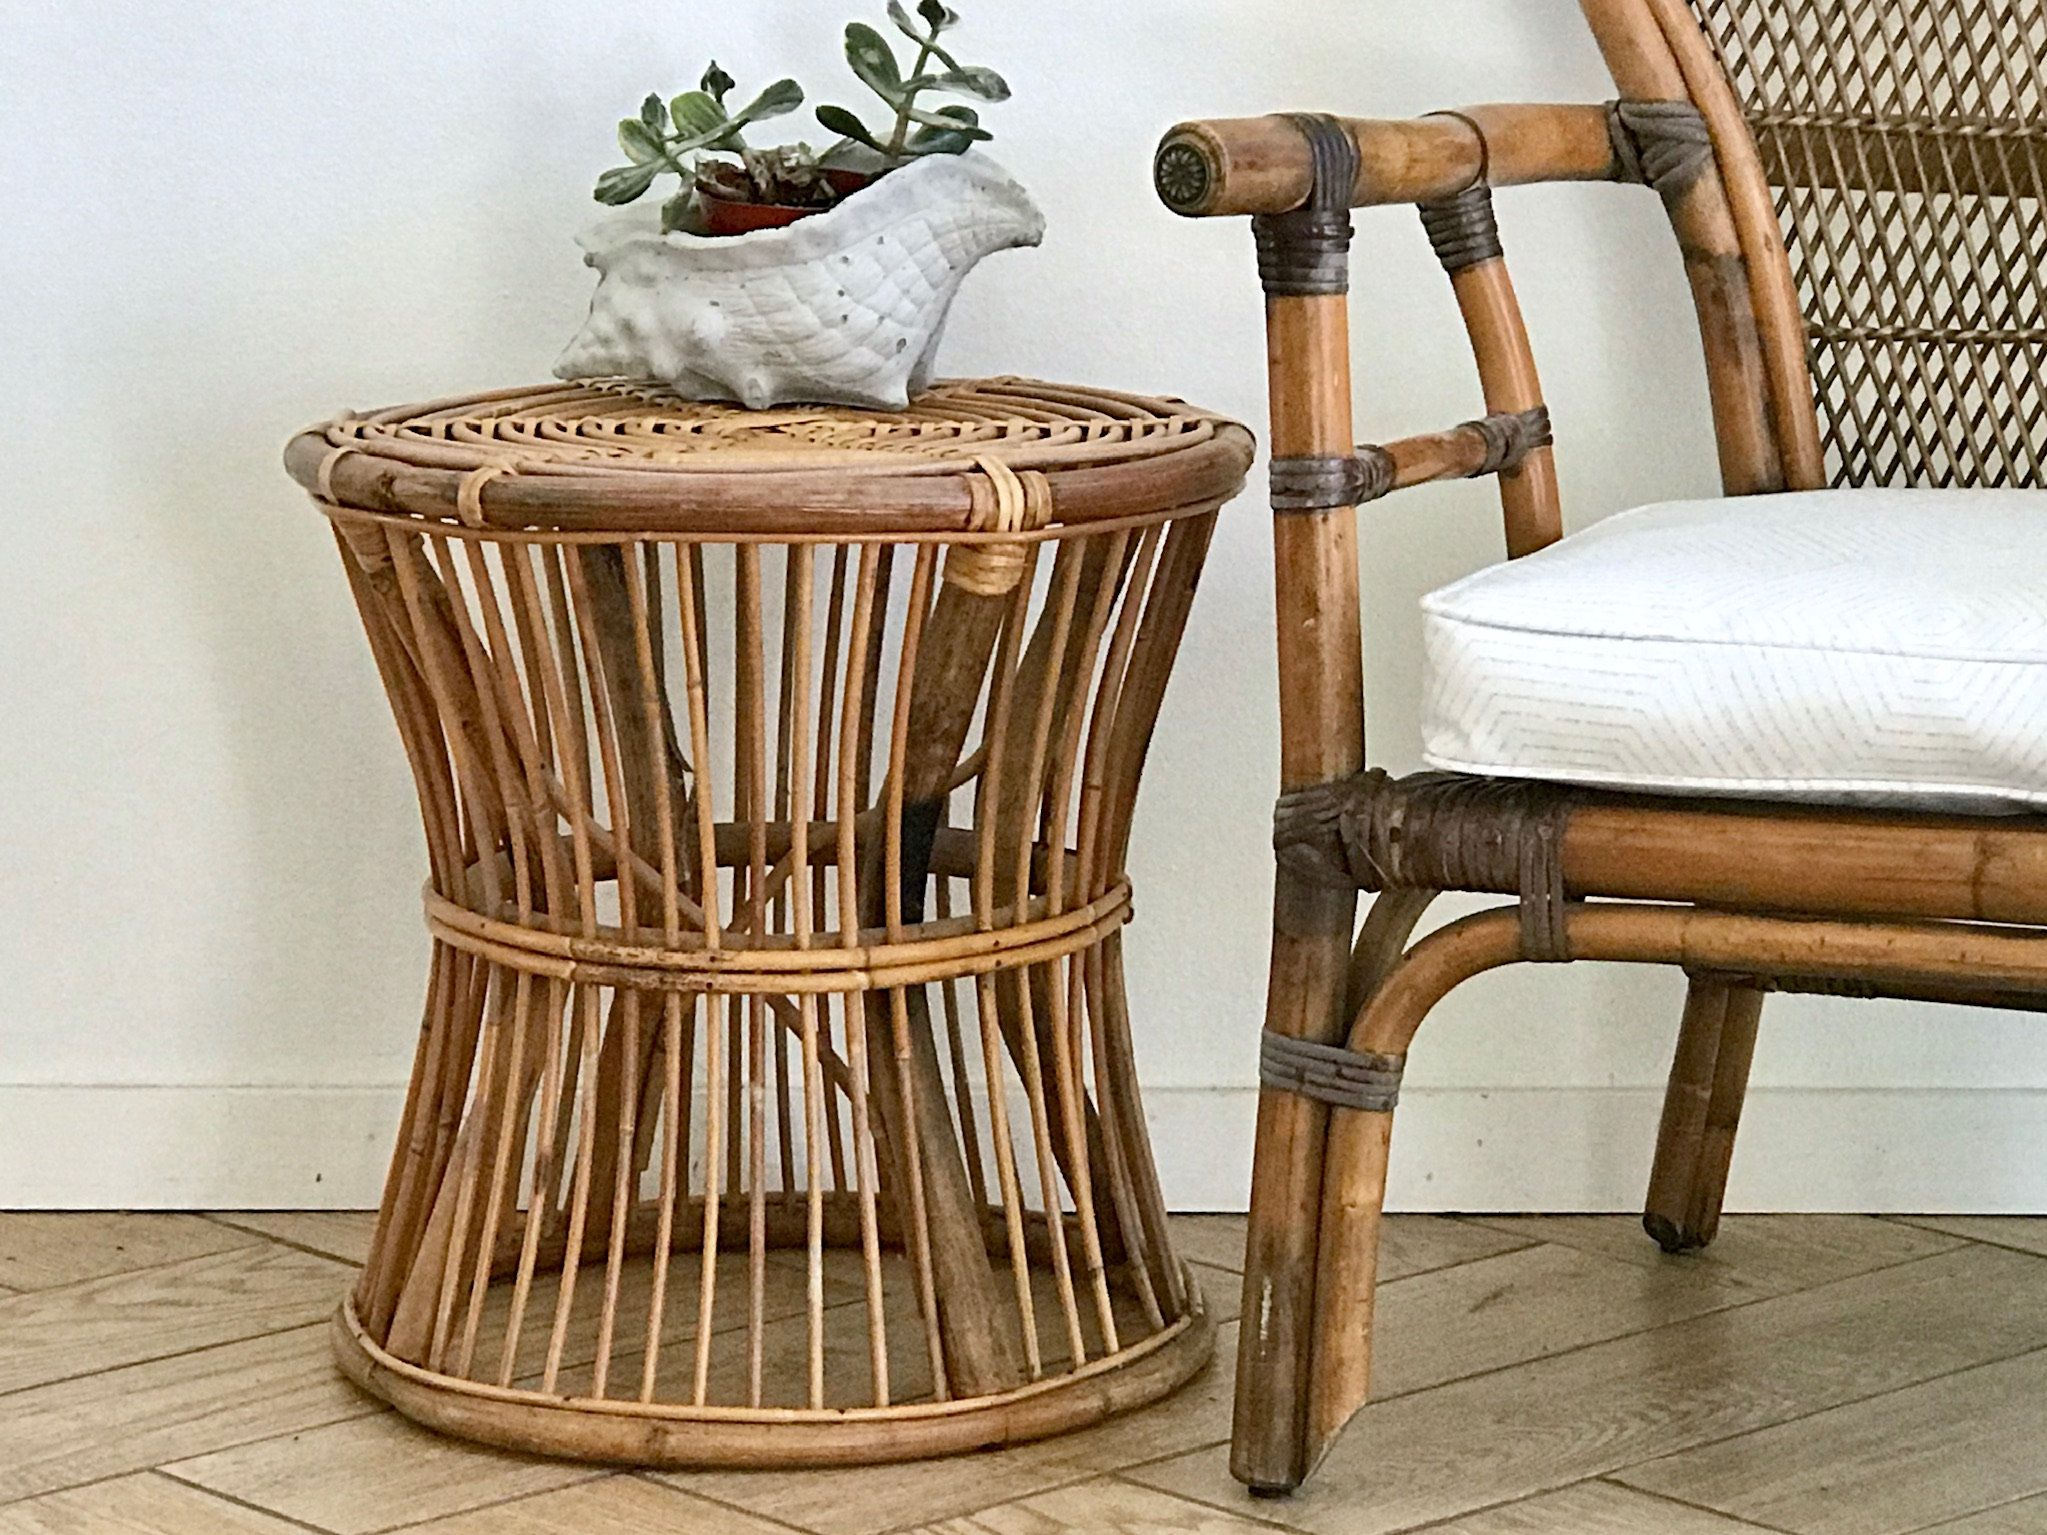 Spiral Bamboo Accent Table Round Woven Rattan Side Table Bamboo Plant Stand 70 S Wicker Plant Holder Bohemian Bambo Accent Table Rattan Side Table Wicker Table Bamboo Plants